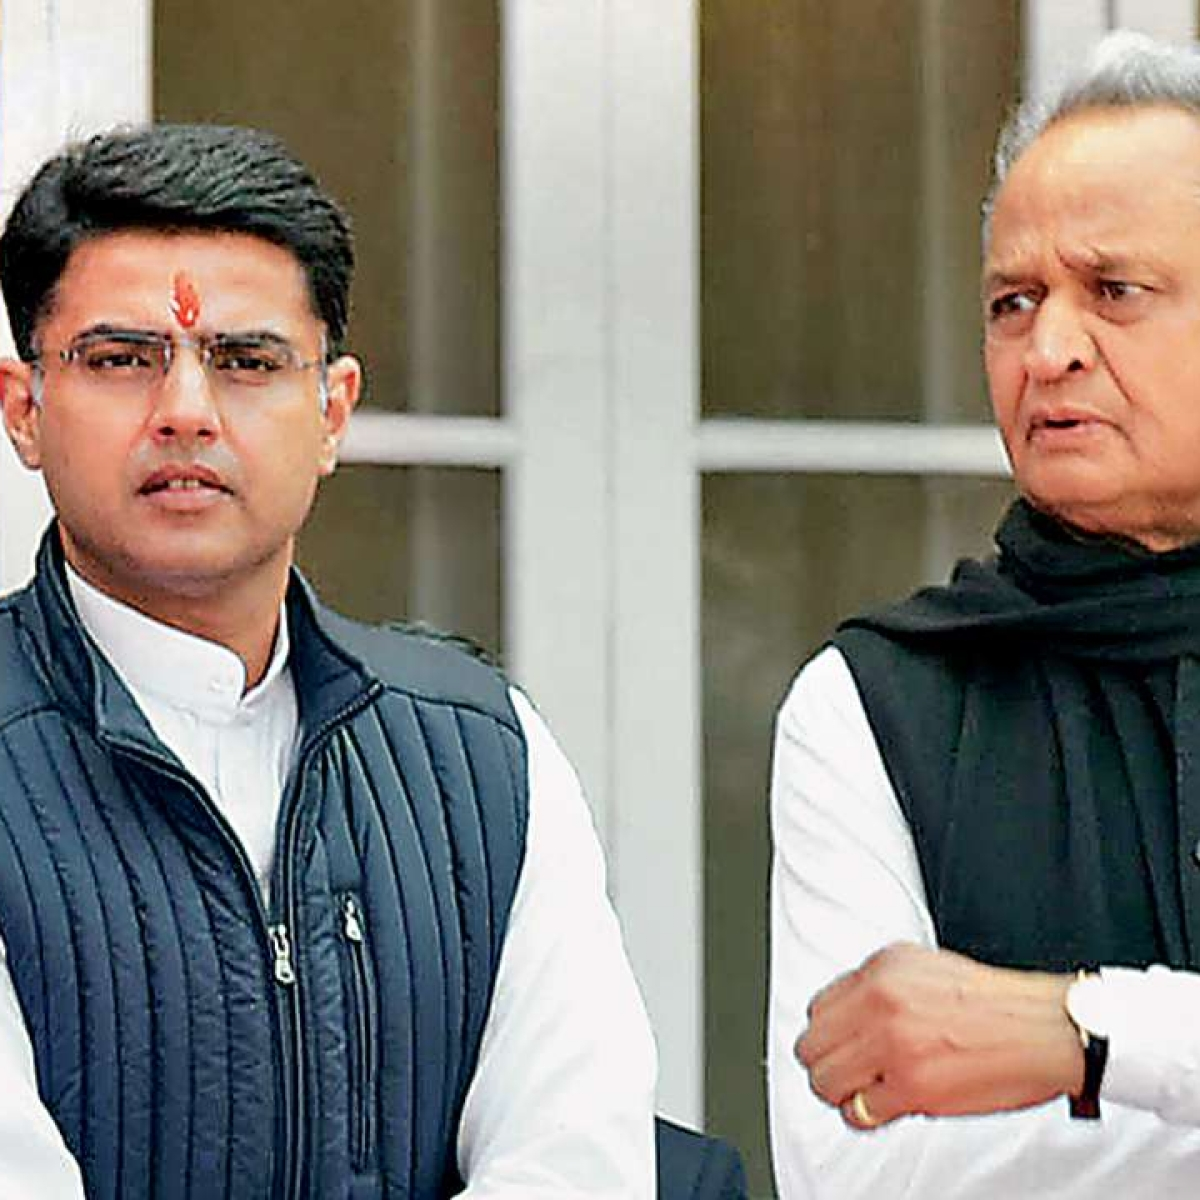 Gehlot told to tone down attack as Pilot faction moves HC to stall Speaker's move to invoke Anti-Defection Law